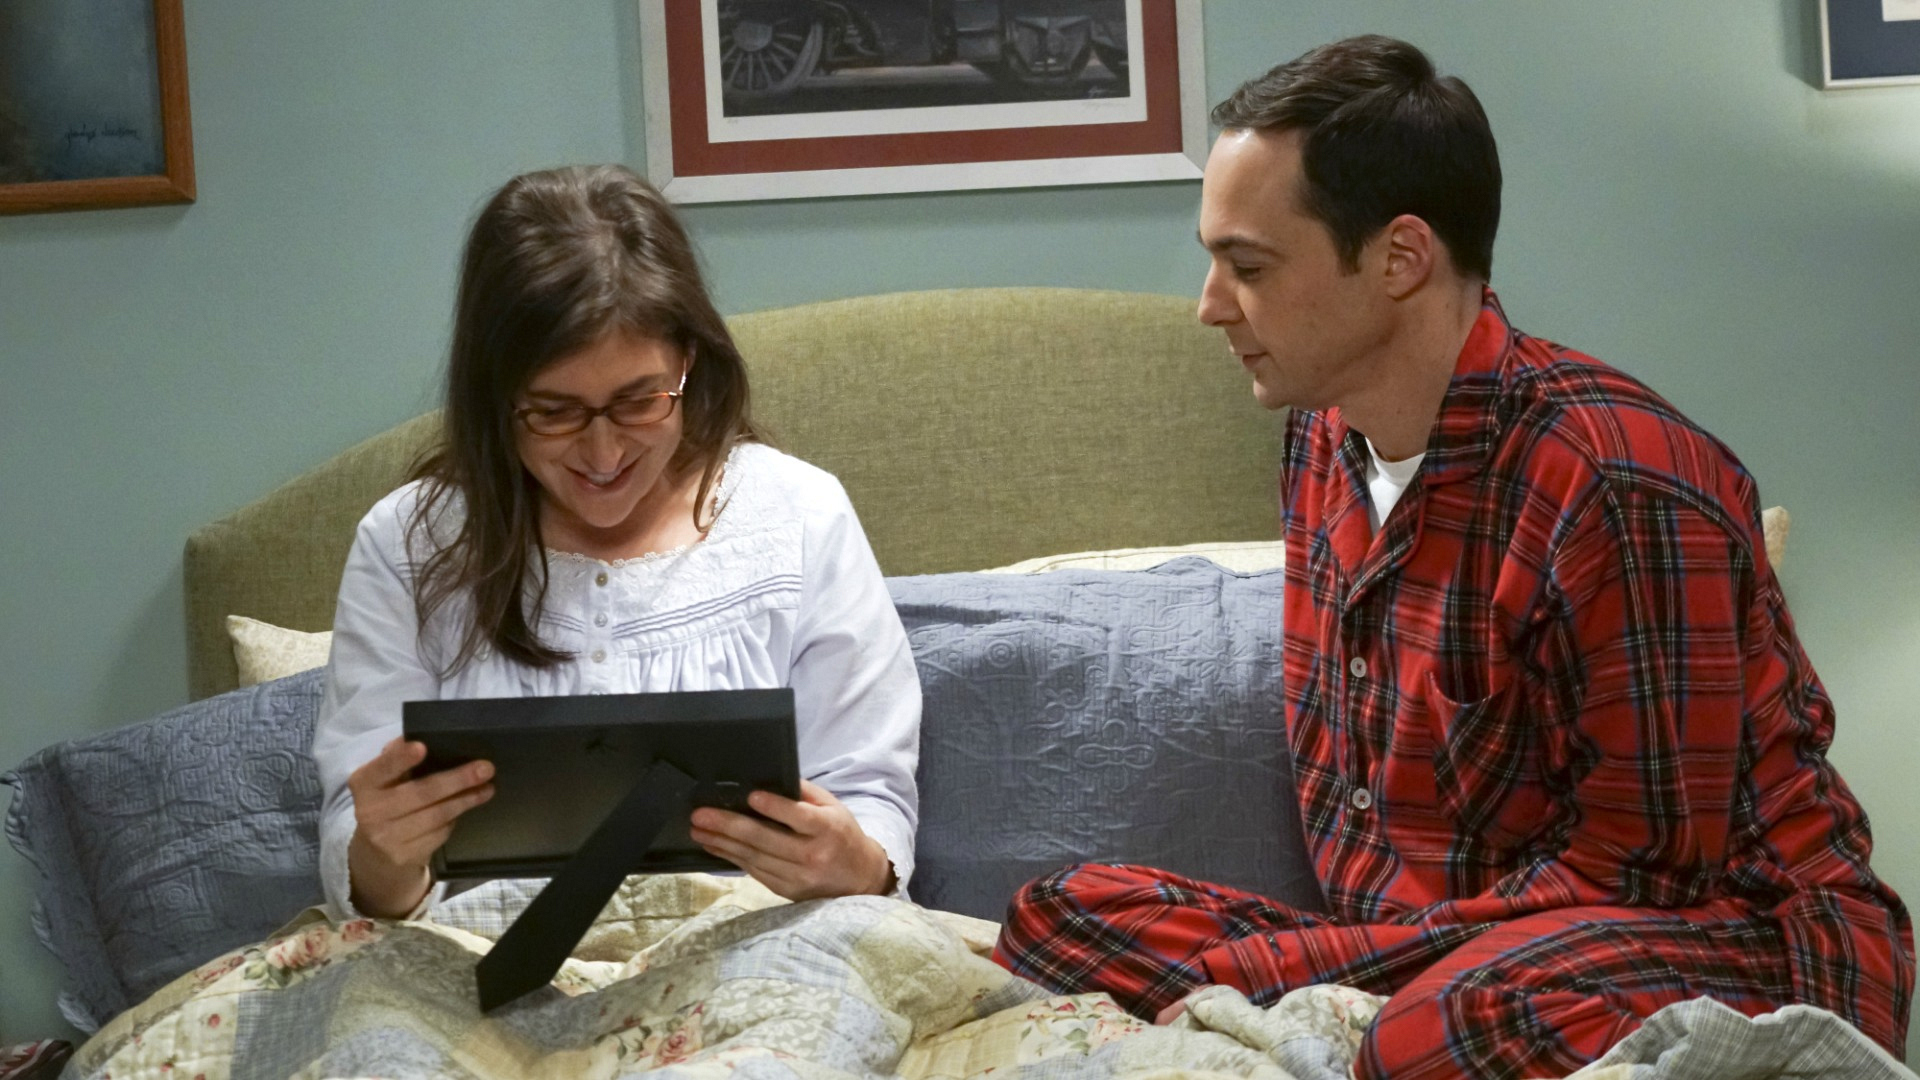 Sheldon gives Amy a heartfelt gift.